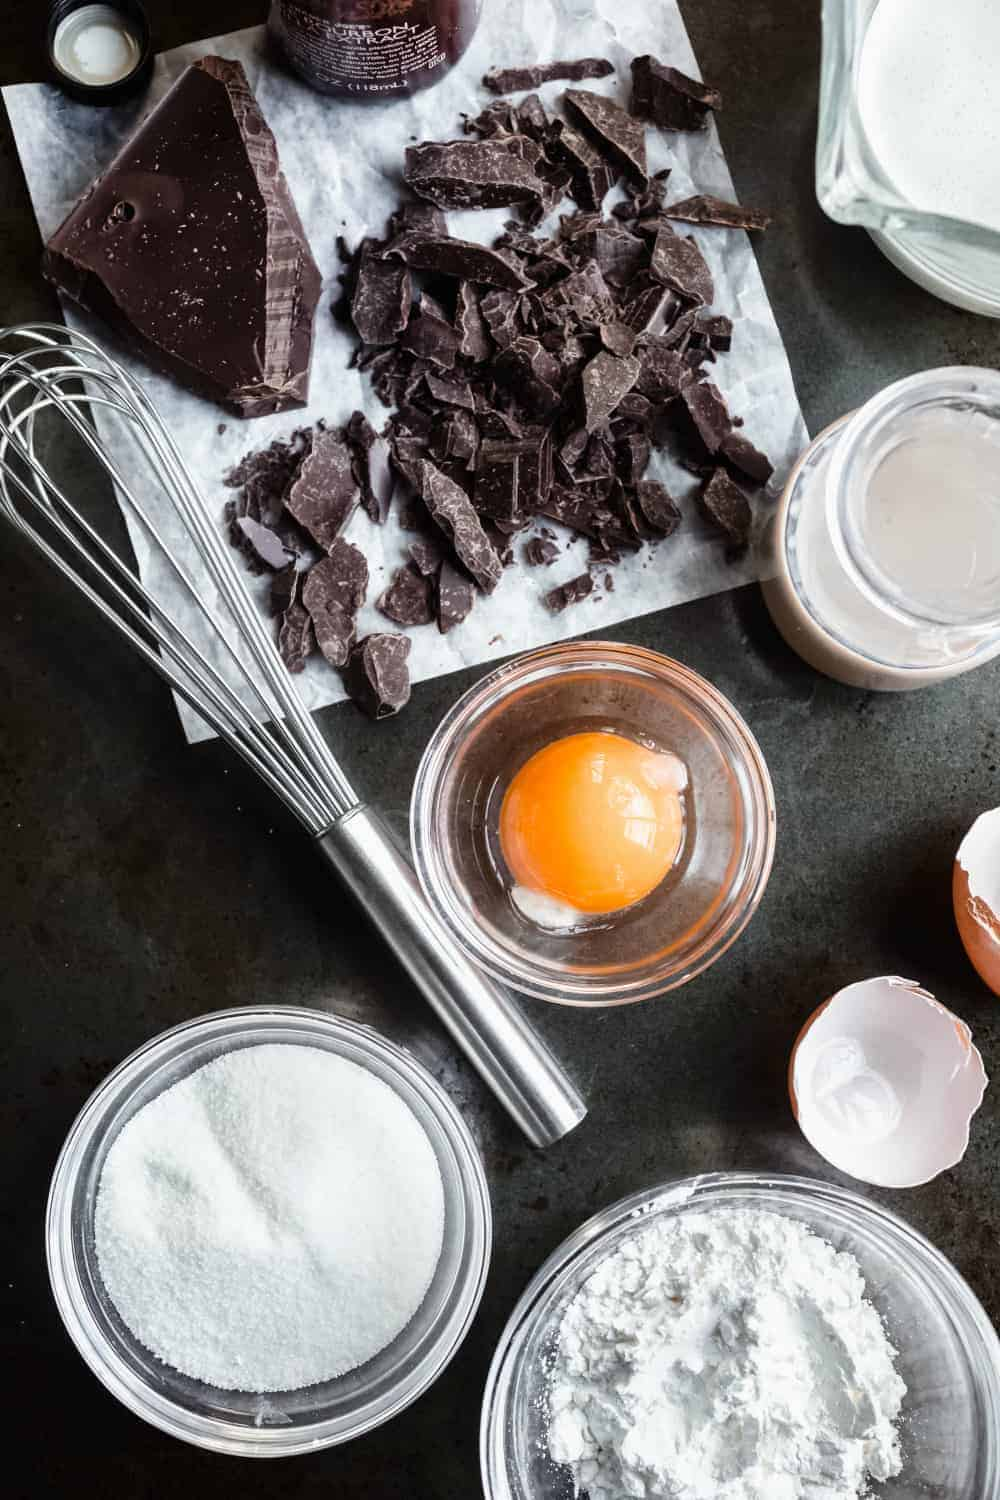 Ingredients for homemade chocolate pudding with Baileys arranged on a black countertop